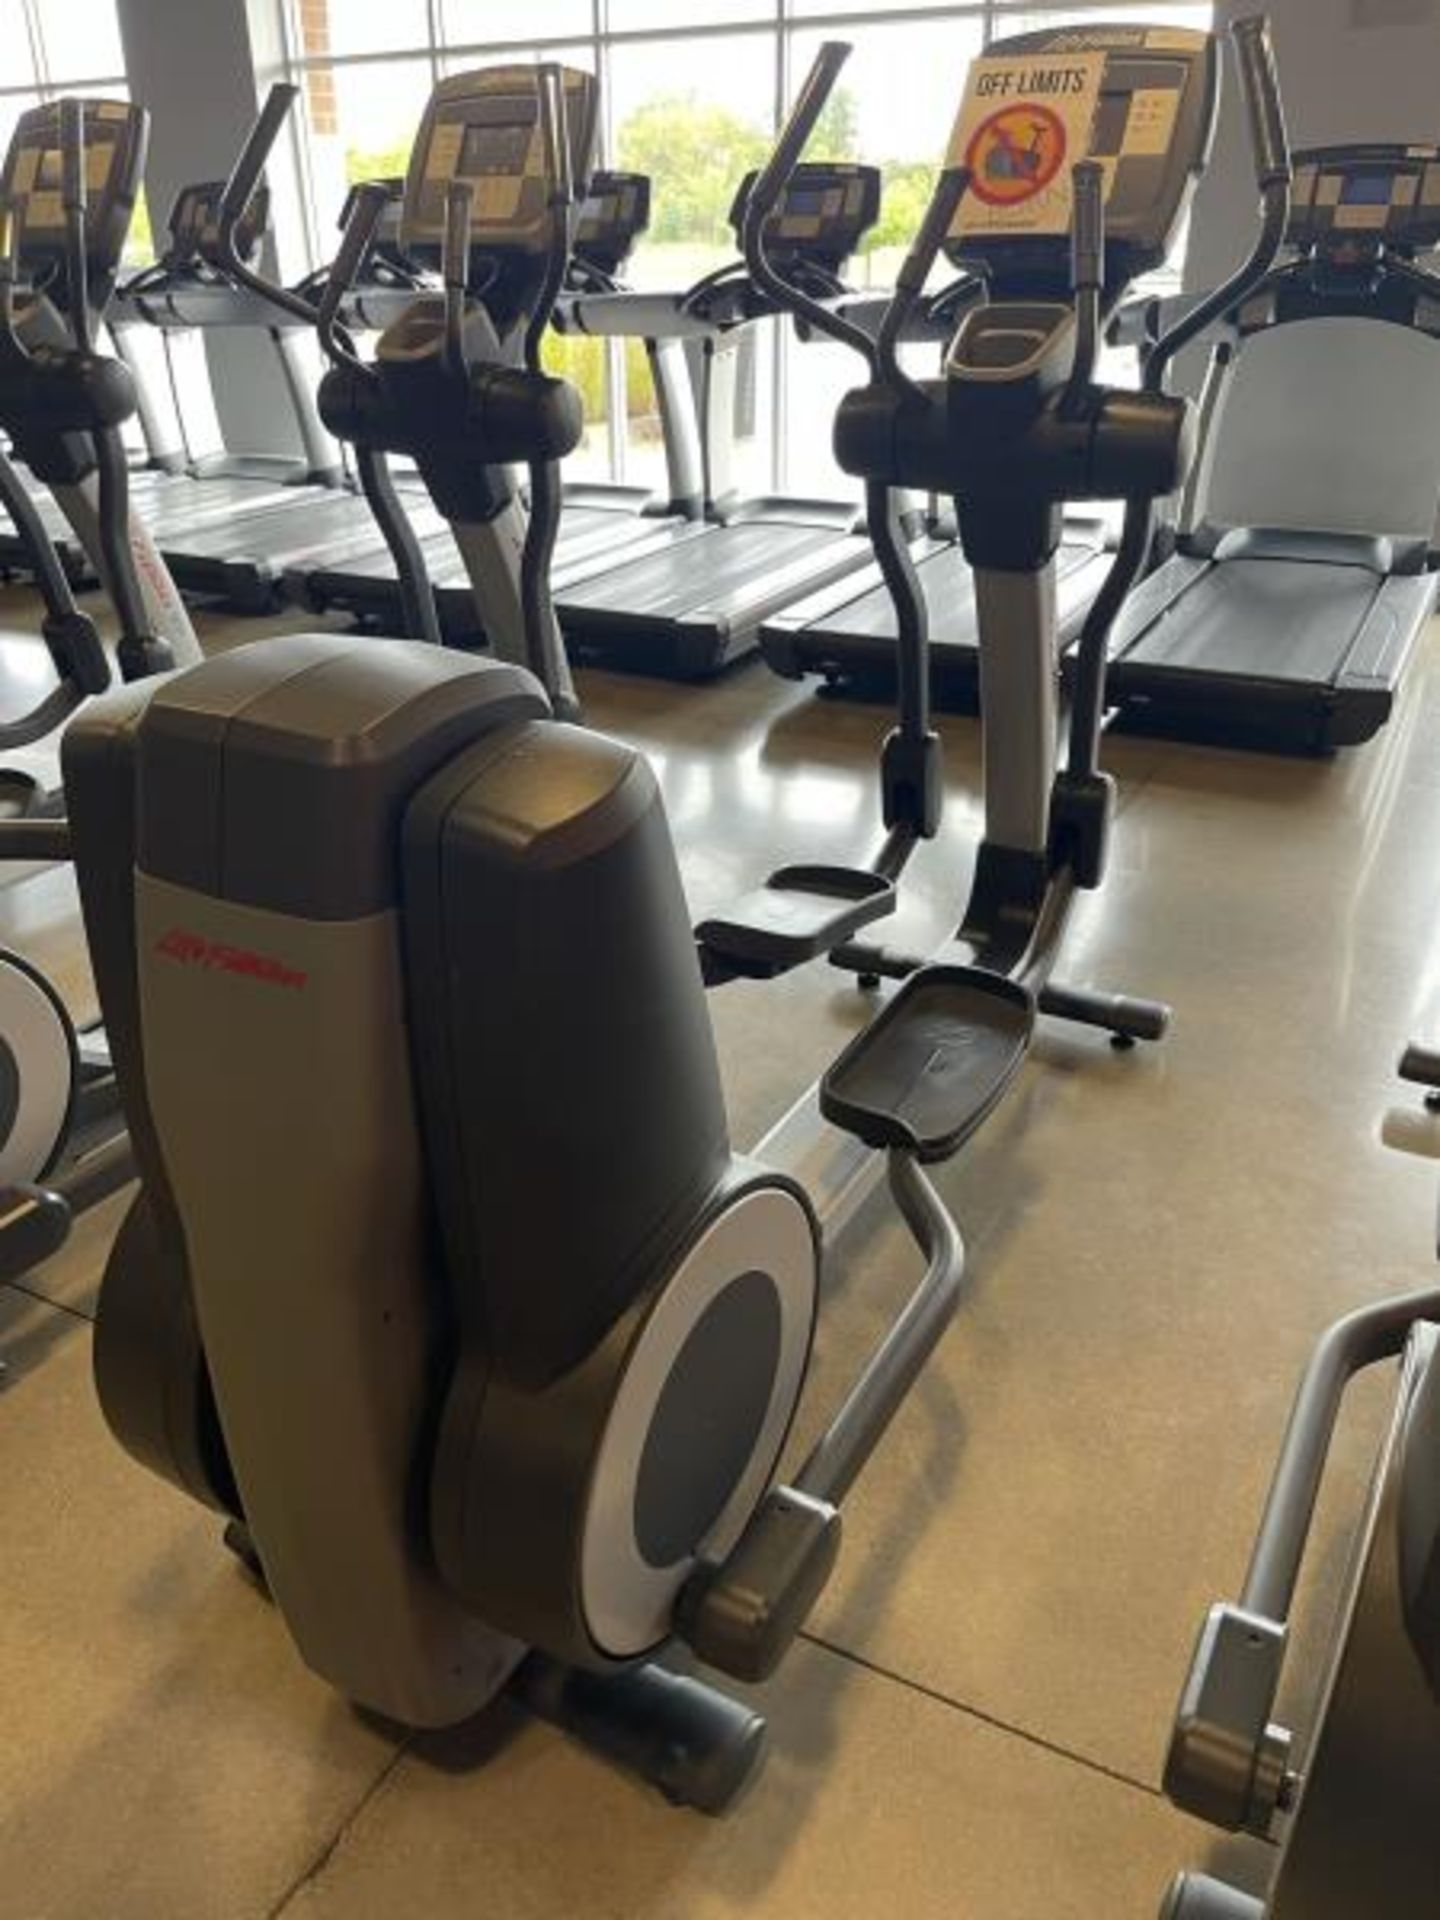 Life Fitness Elliptical M: 95X Has Out Of Order Sign - Image 2 of 4